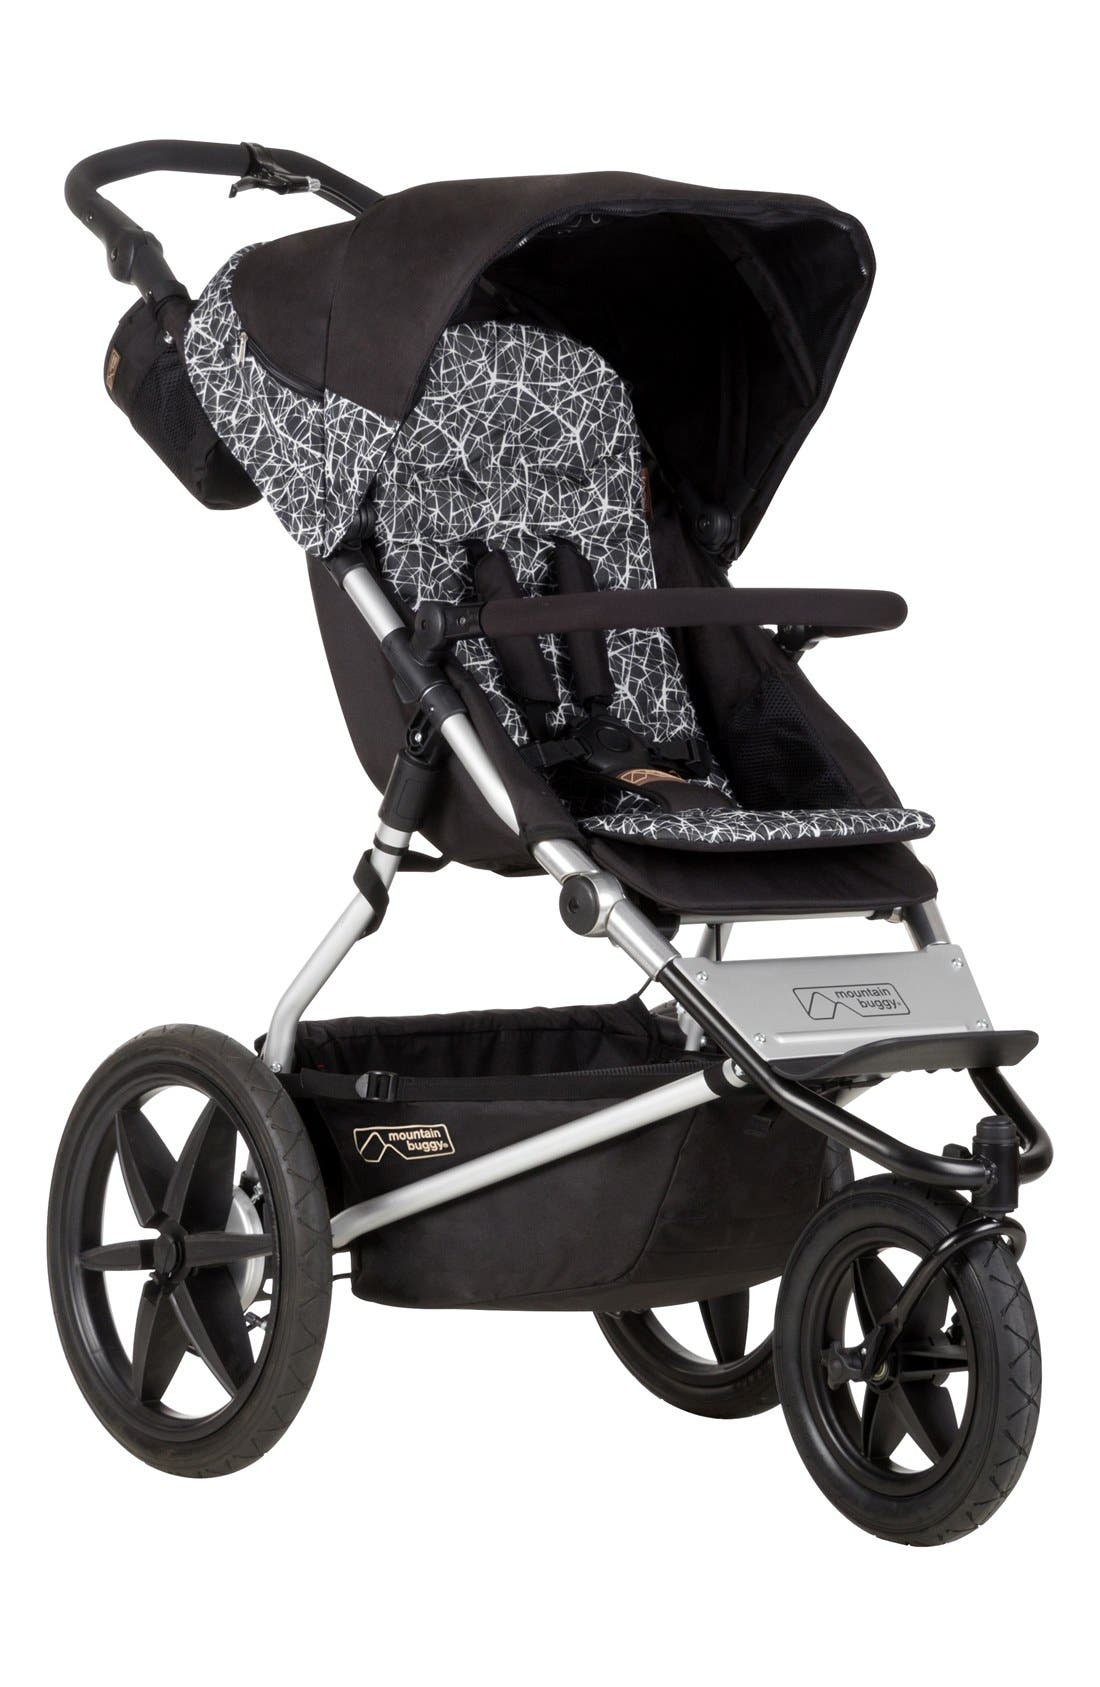 MOUNTAIN BUGGY All Terrain Jogging Stroller